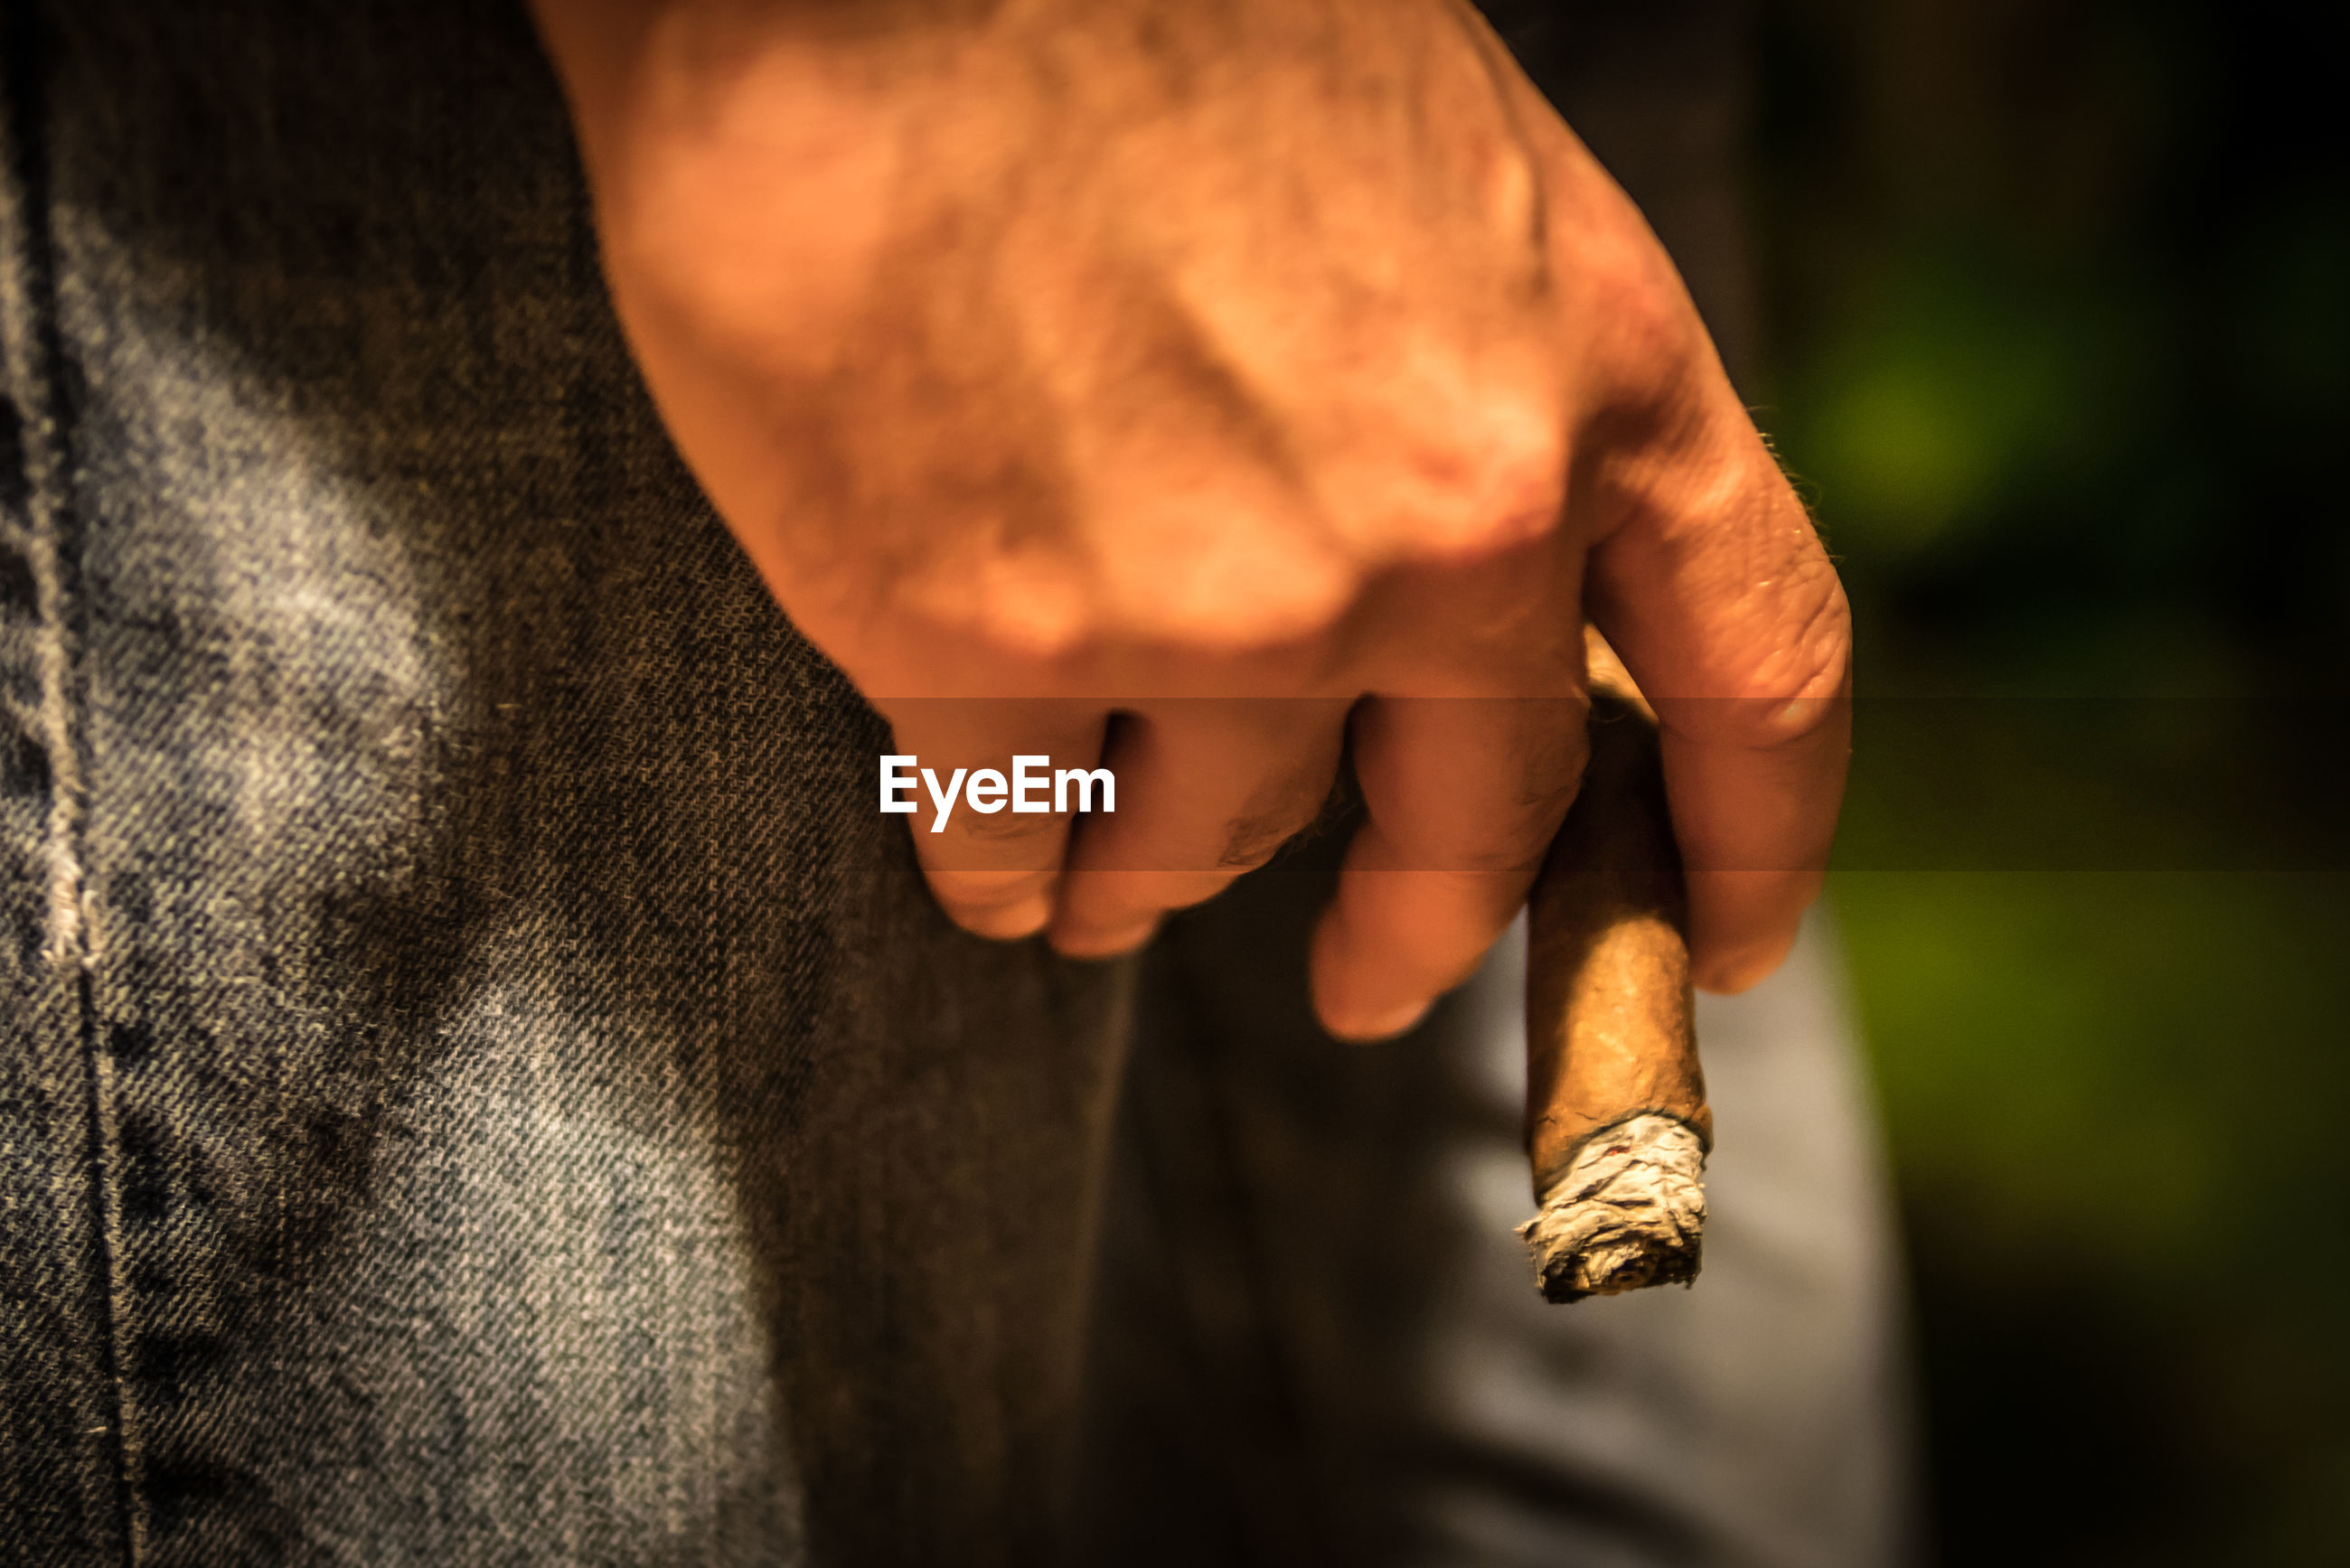 Midsection of man holding lit cigar